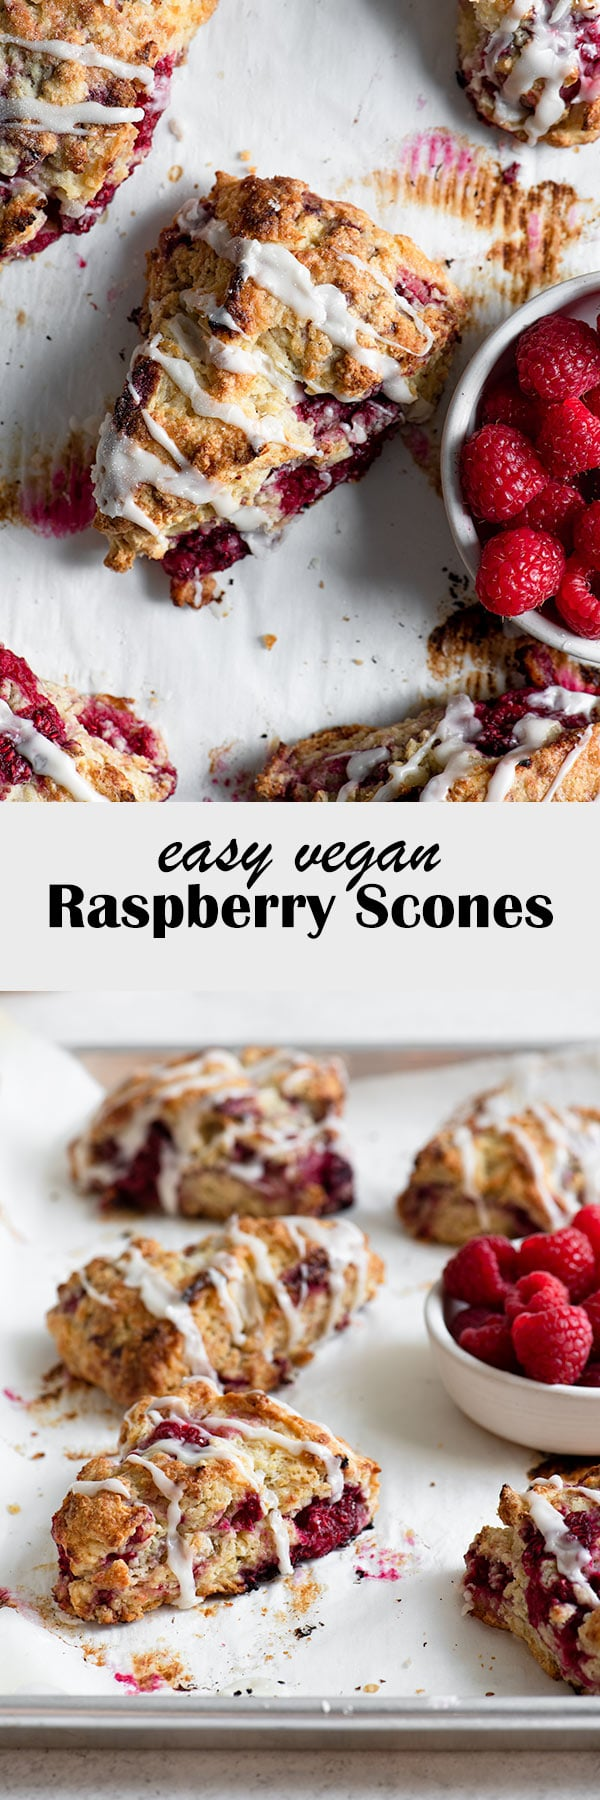 These homemade raspberry scones are so quick and easy to make! They're completely vegan, and absolutely delicious! Enjoy them for an easy breakfast or afternoon snack. #veganbaking #veganscones #scones #baking #vegantreats #raspberries